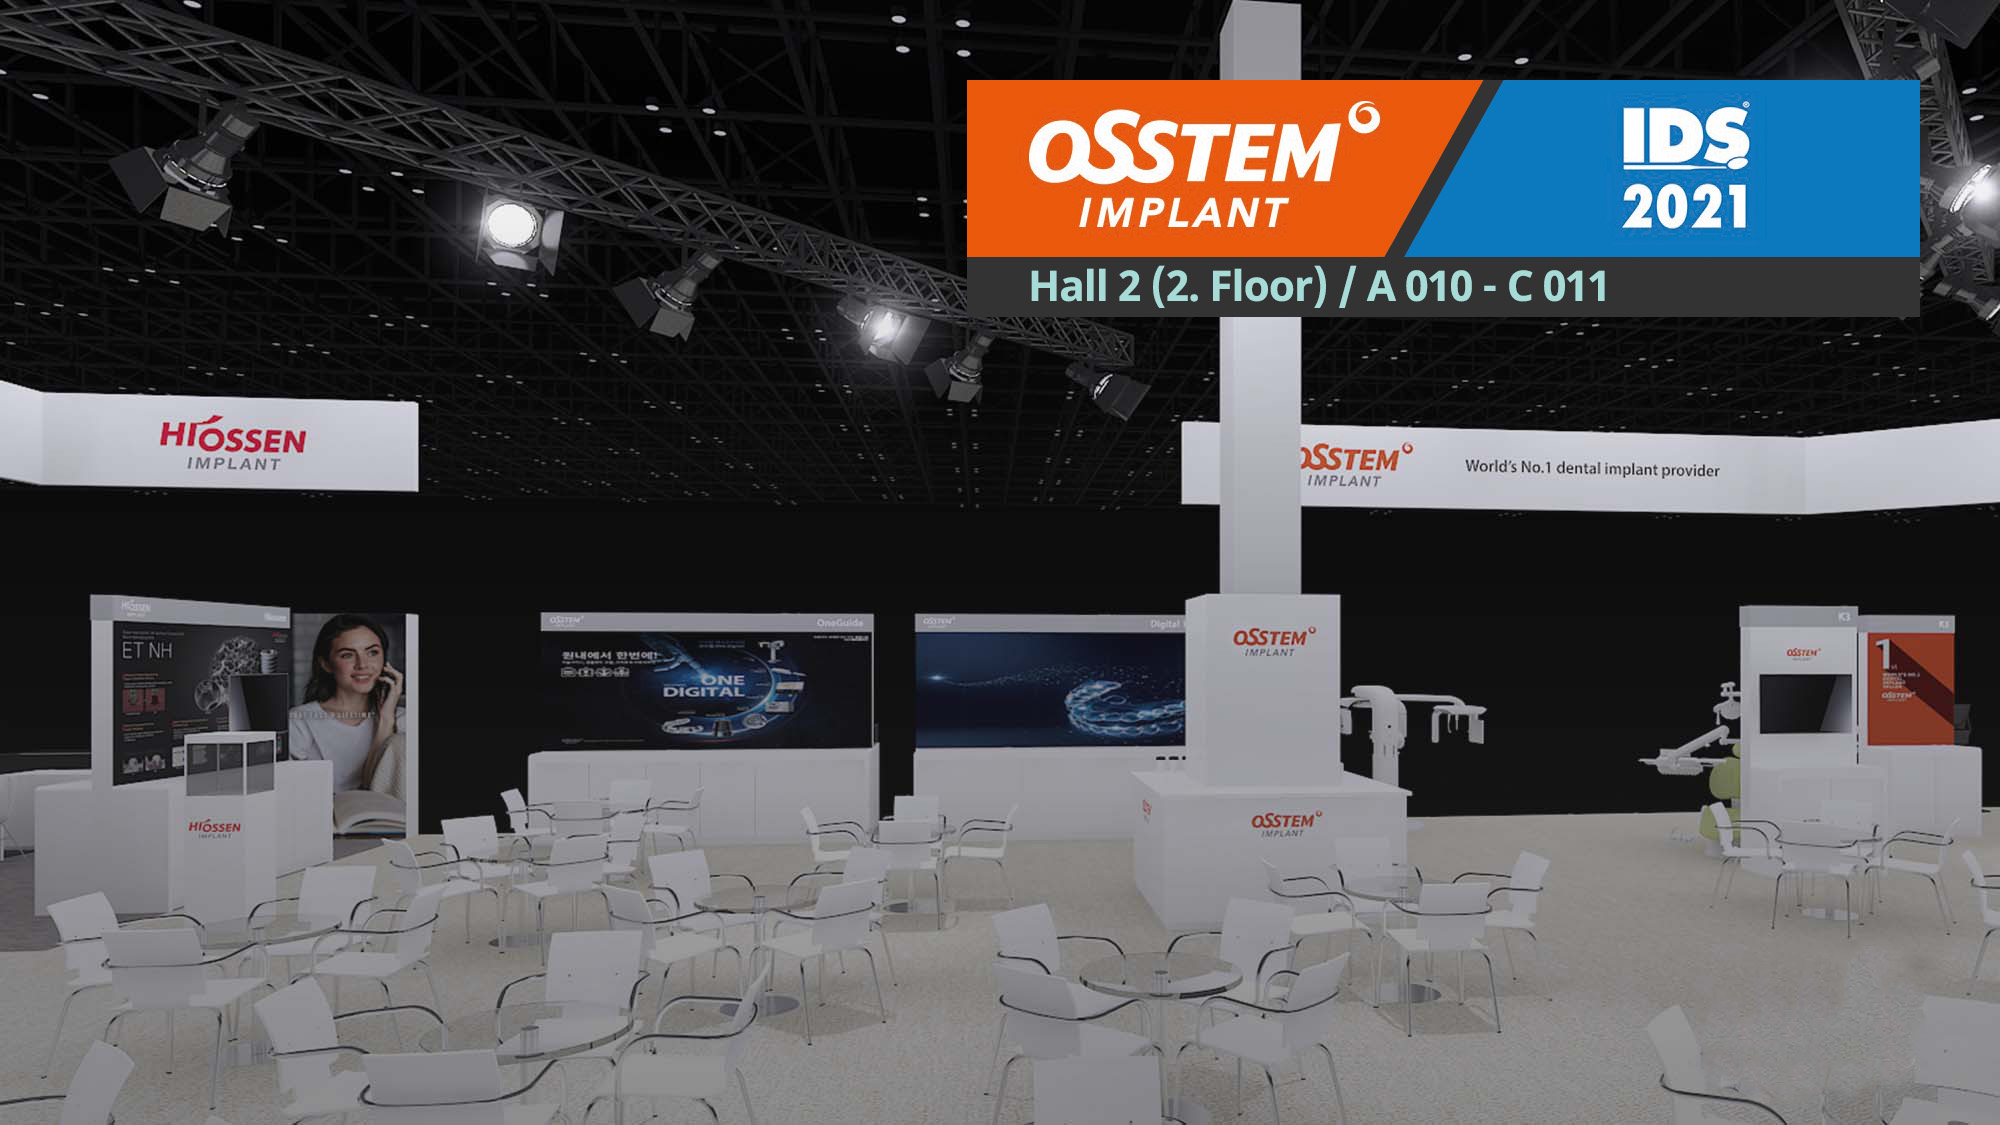 IDS × Osstem Implant: No matter what, we'll be there for you